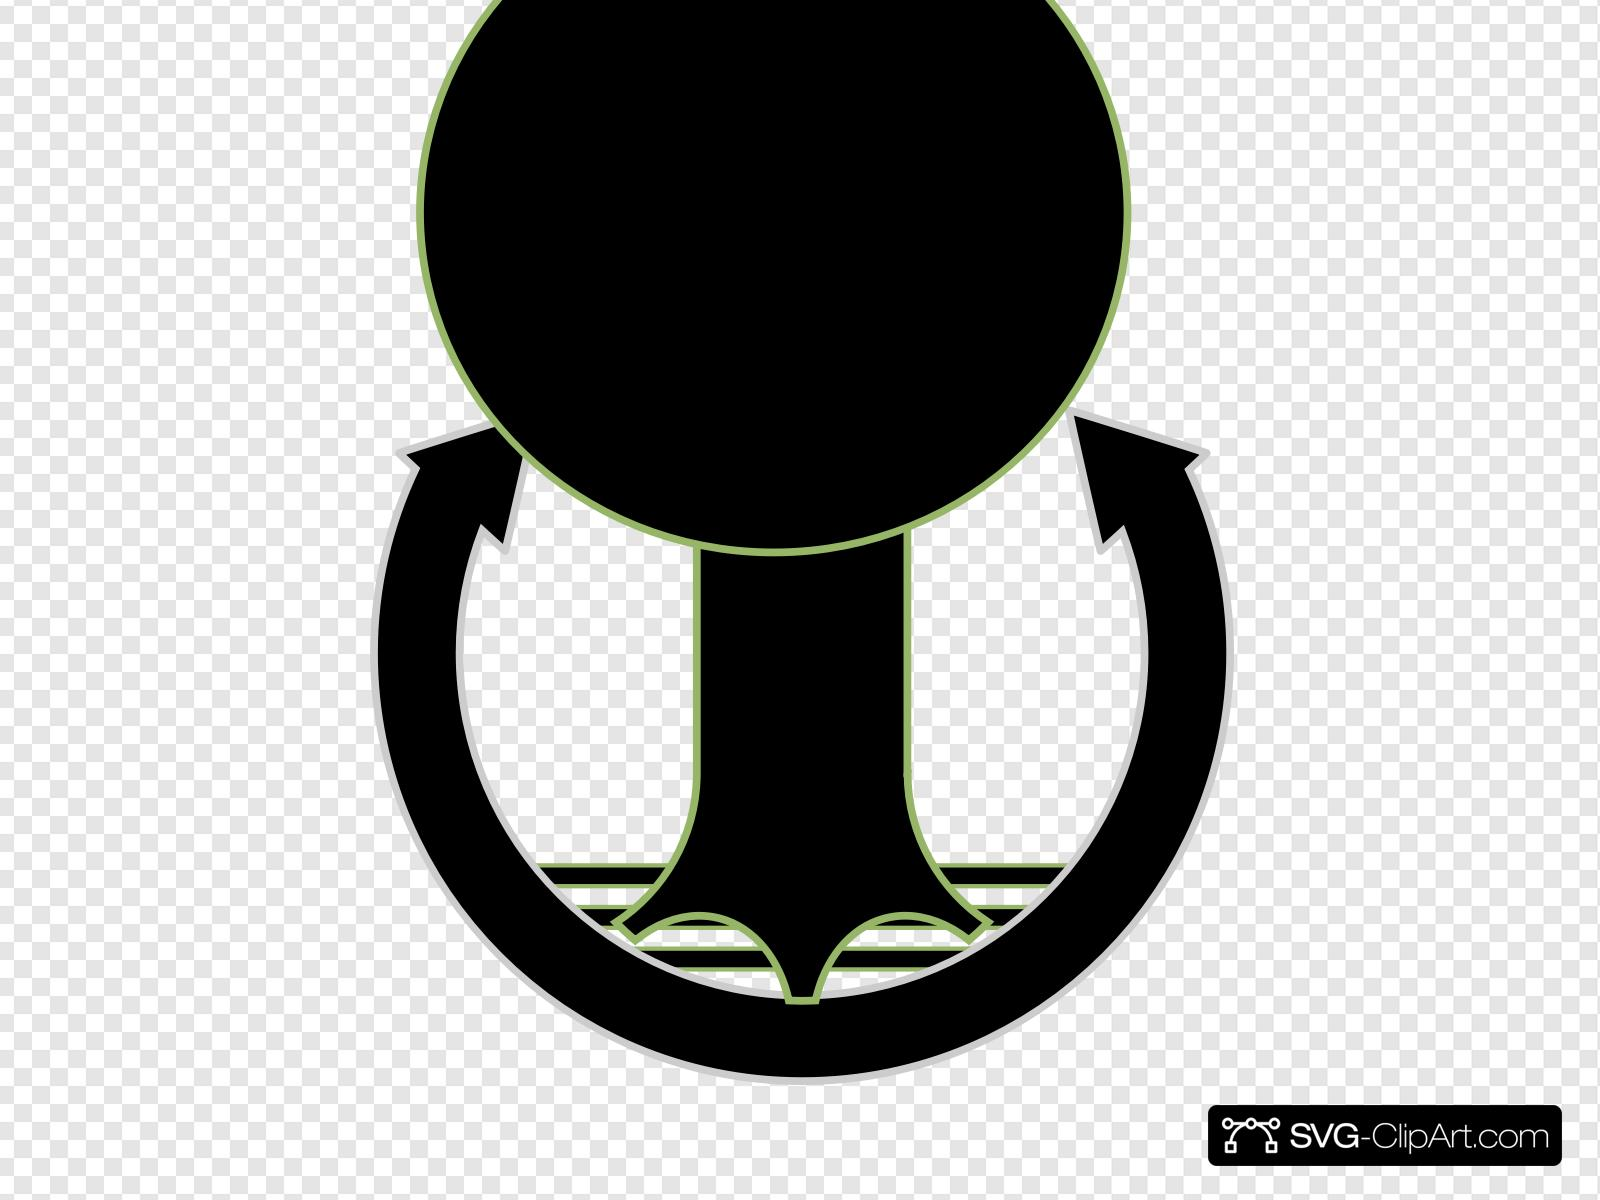 Environment clipart svg. Clip art icon and